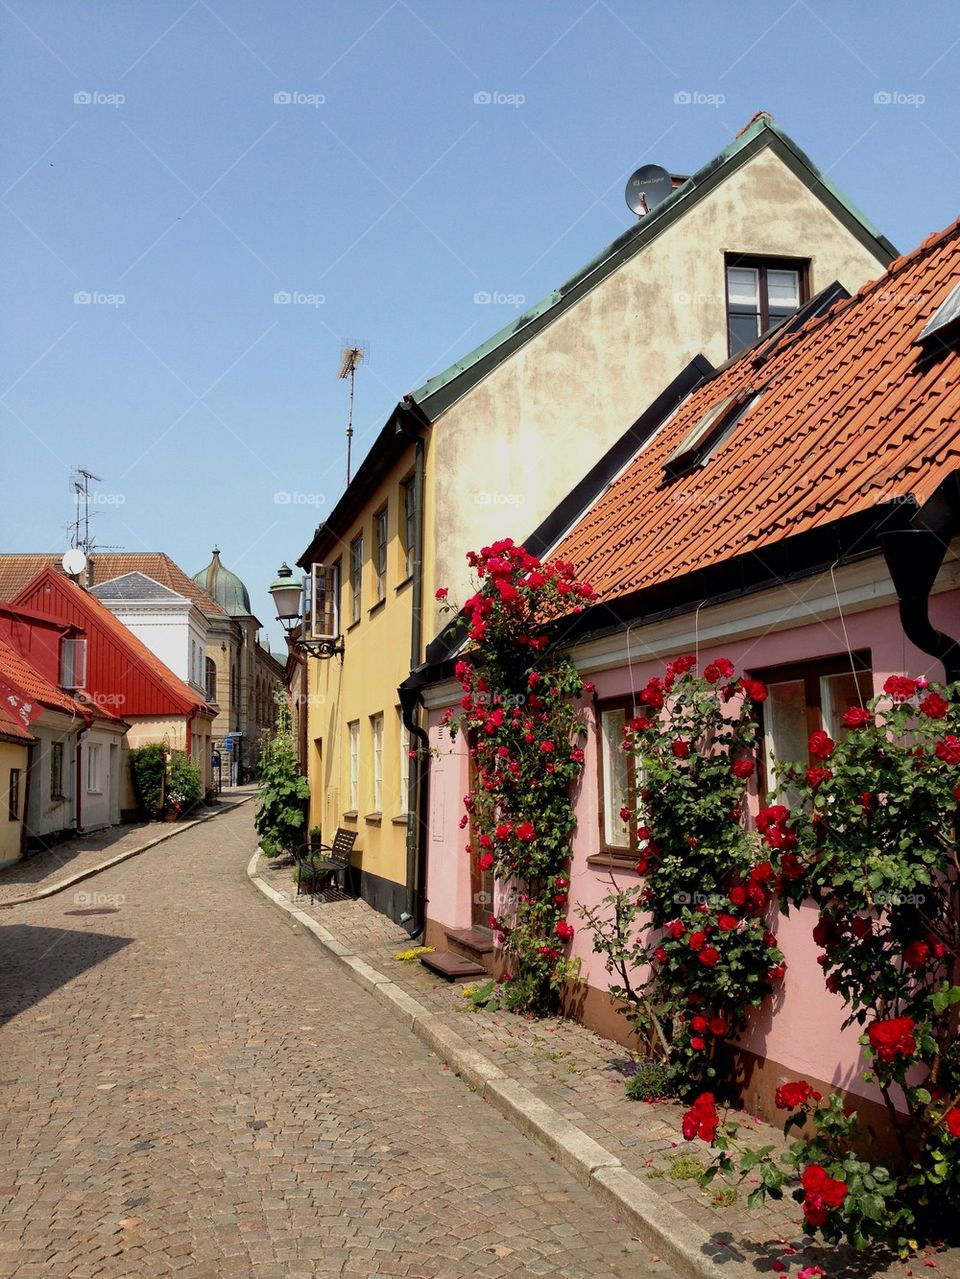 Street in Ystad.